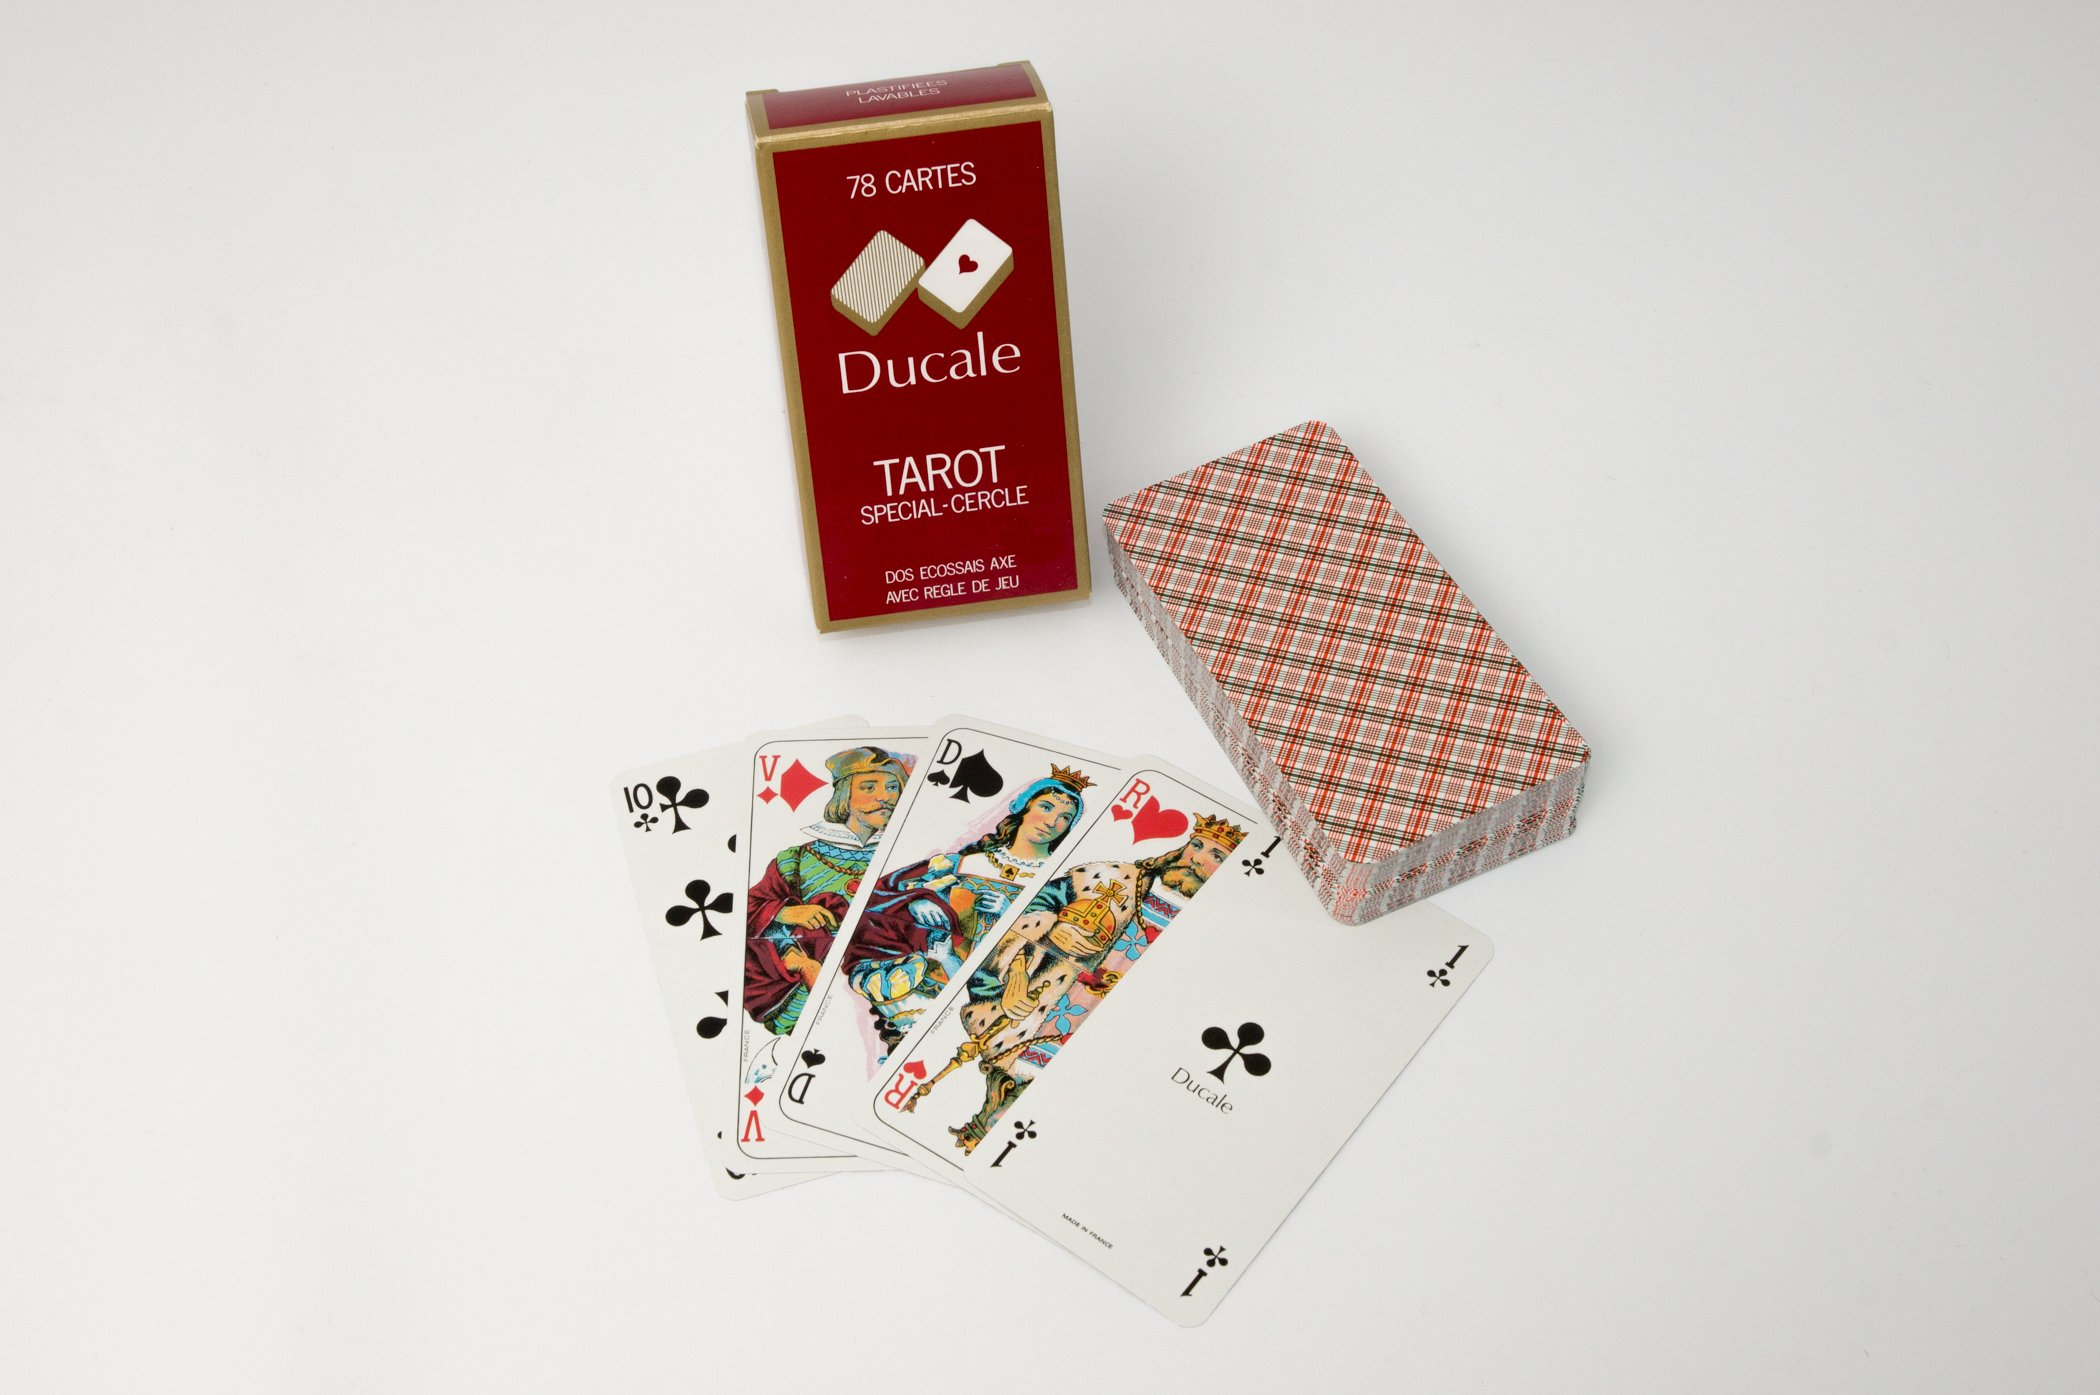 FRANCE CARTES-404680-Card Game-Tarot 78Cards Ducale by FRANCE CARTES (Image #5)